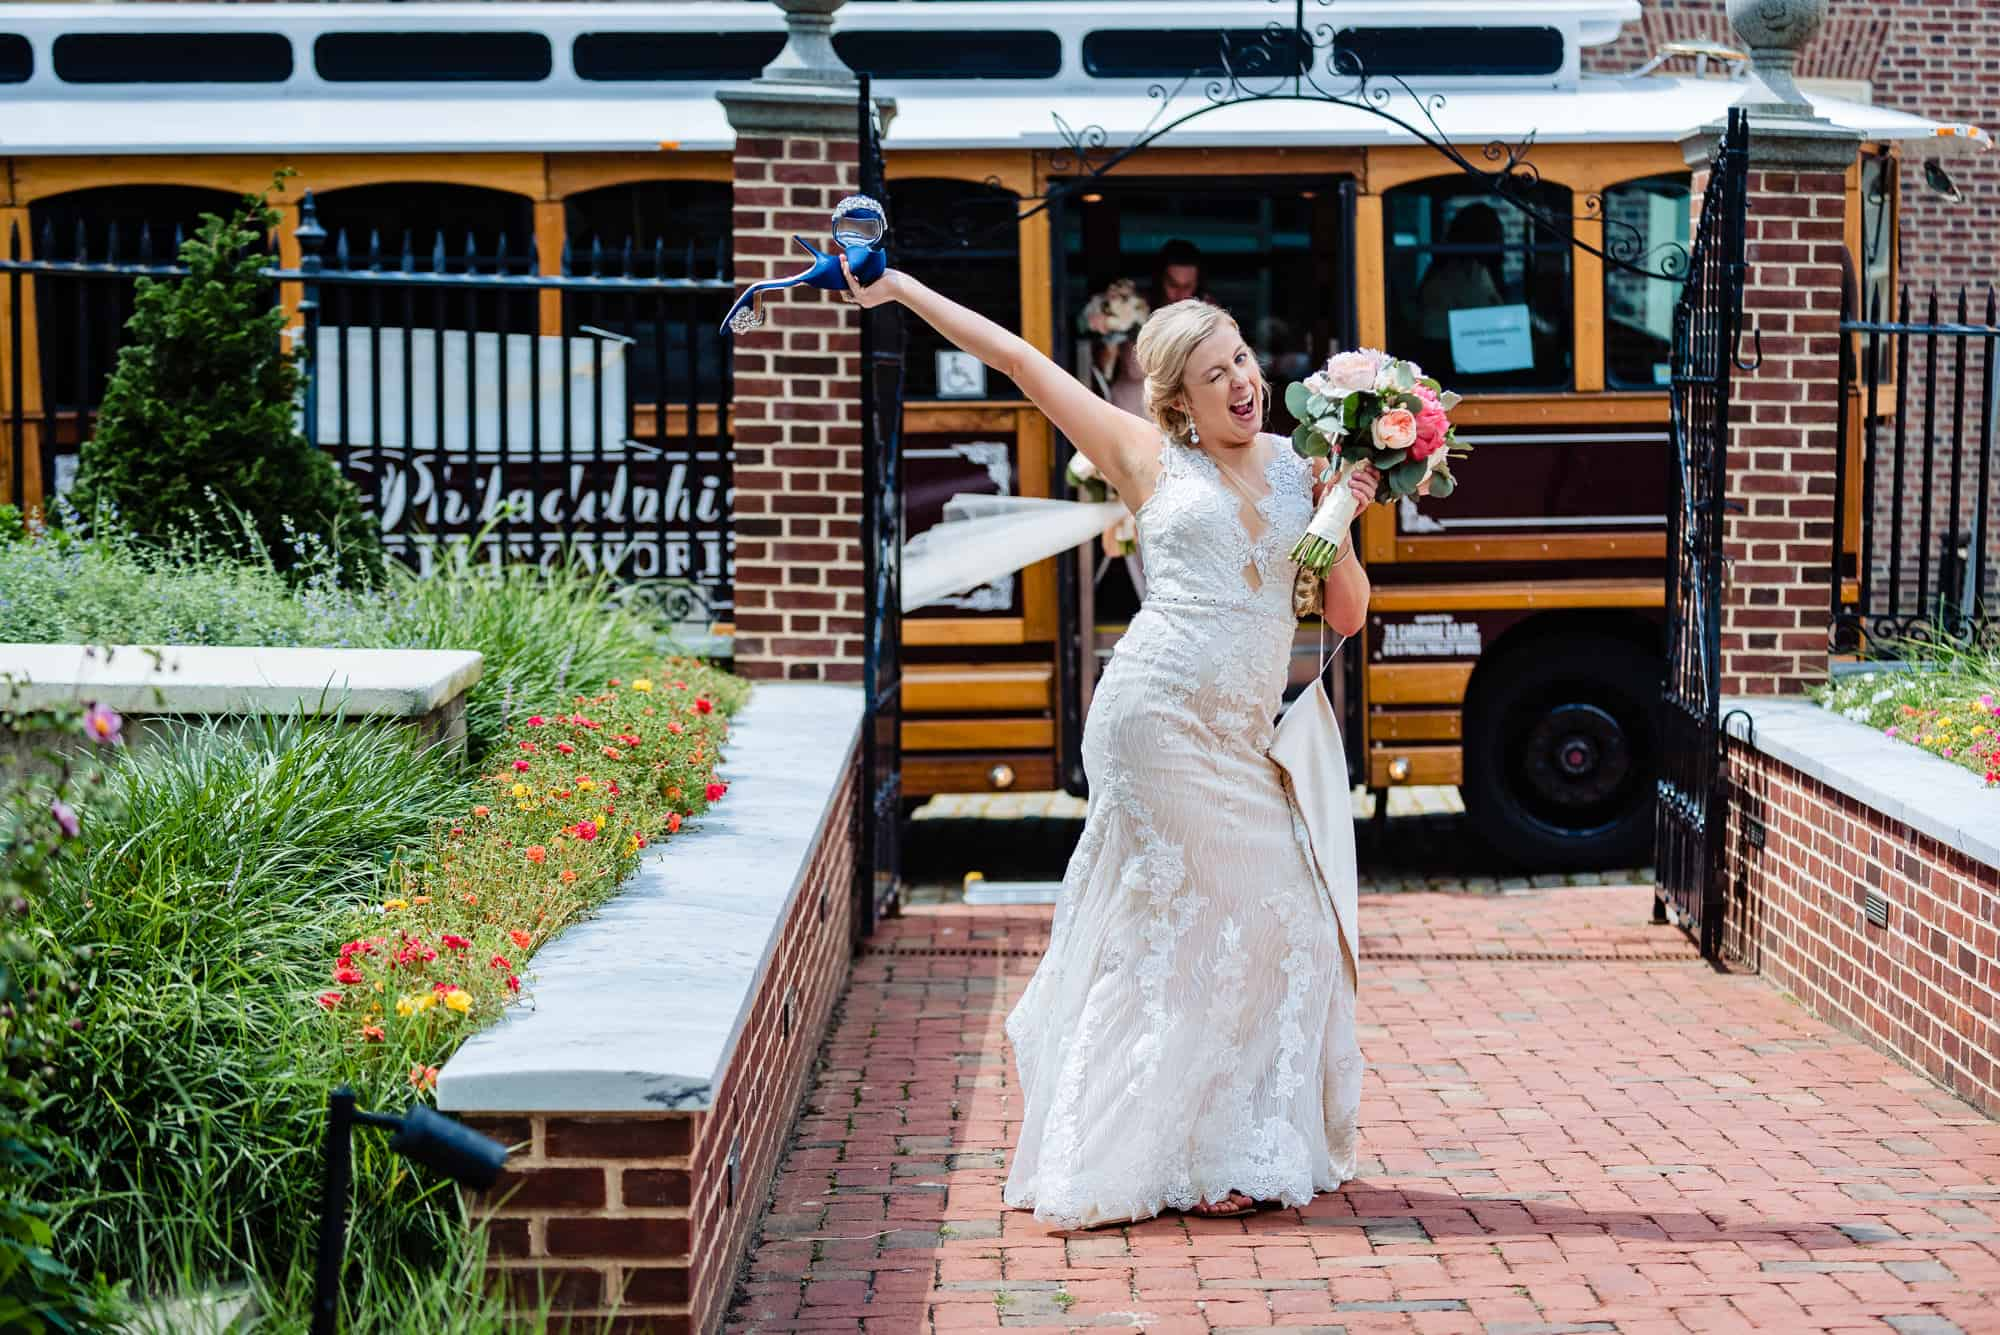 wedding ceremony, bride getting off trolley making funny face with shoes in her hand and arm in the air